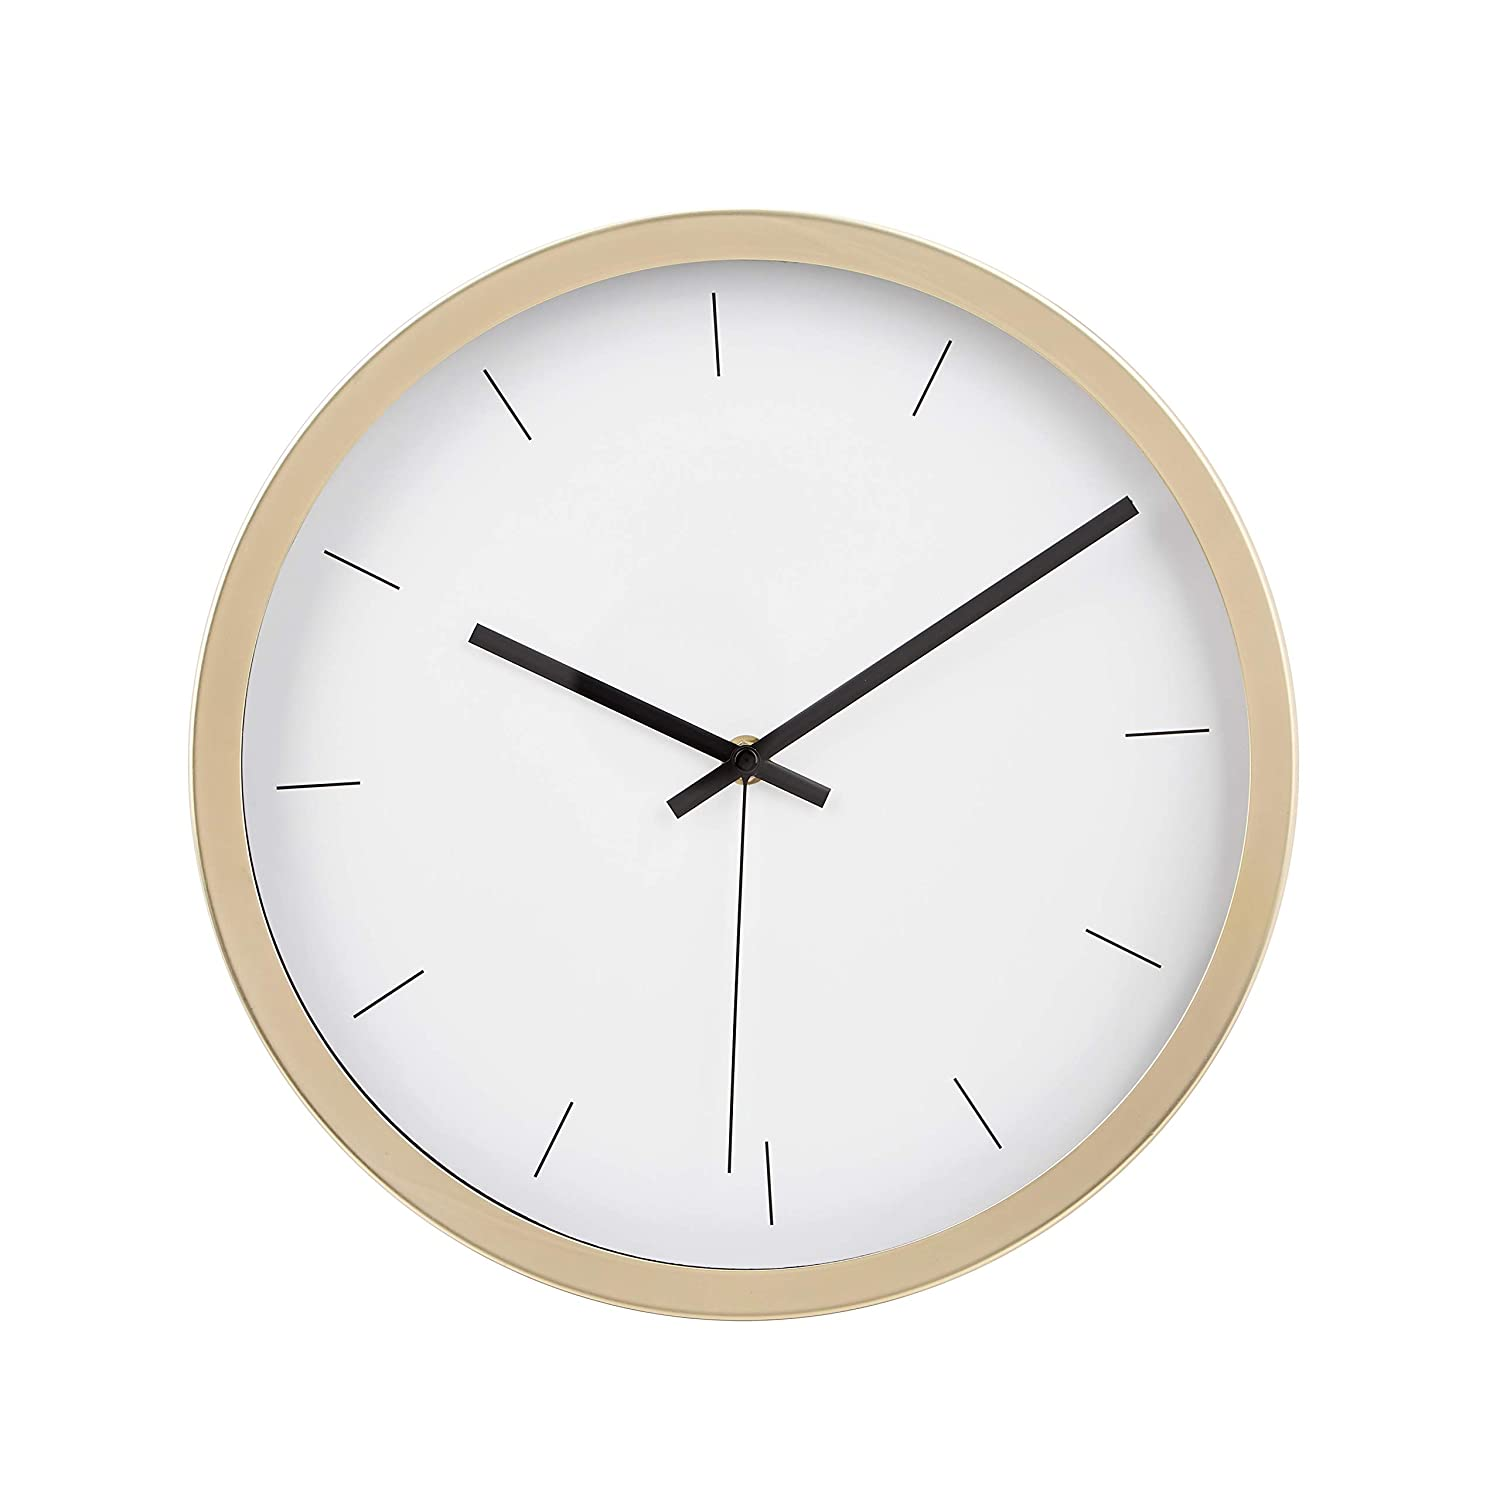 "AmazonBasics 12"" Modern Wall Clock, Brass"